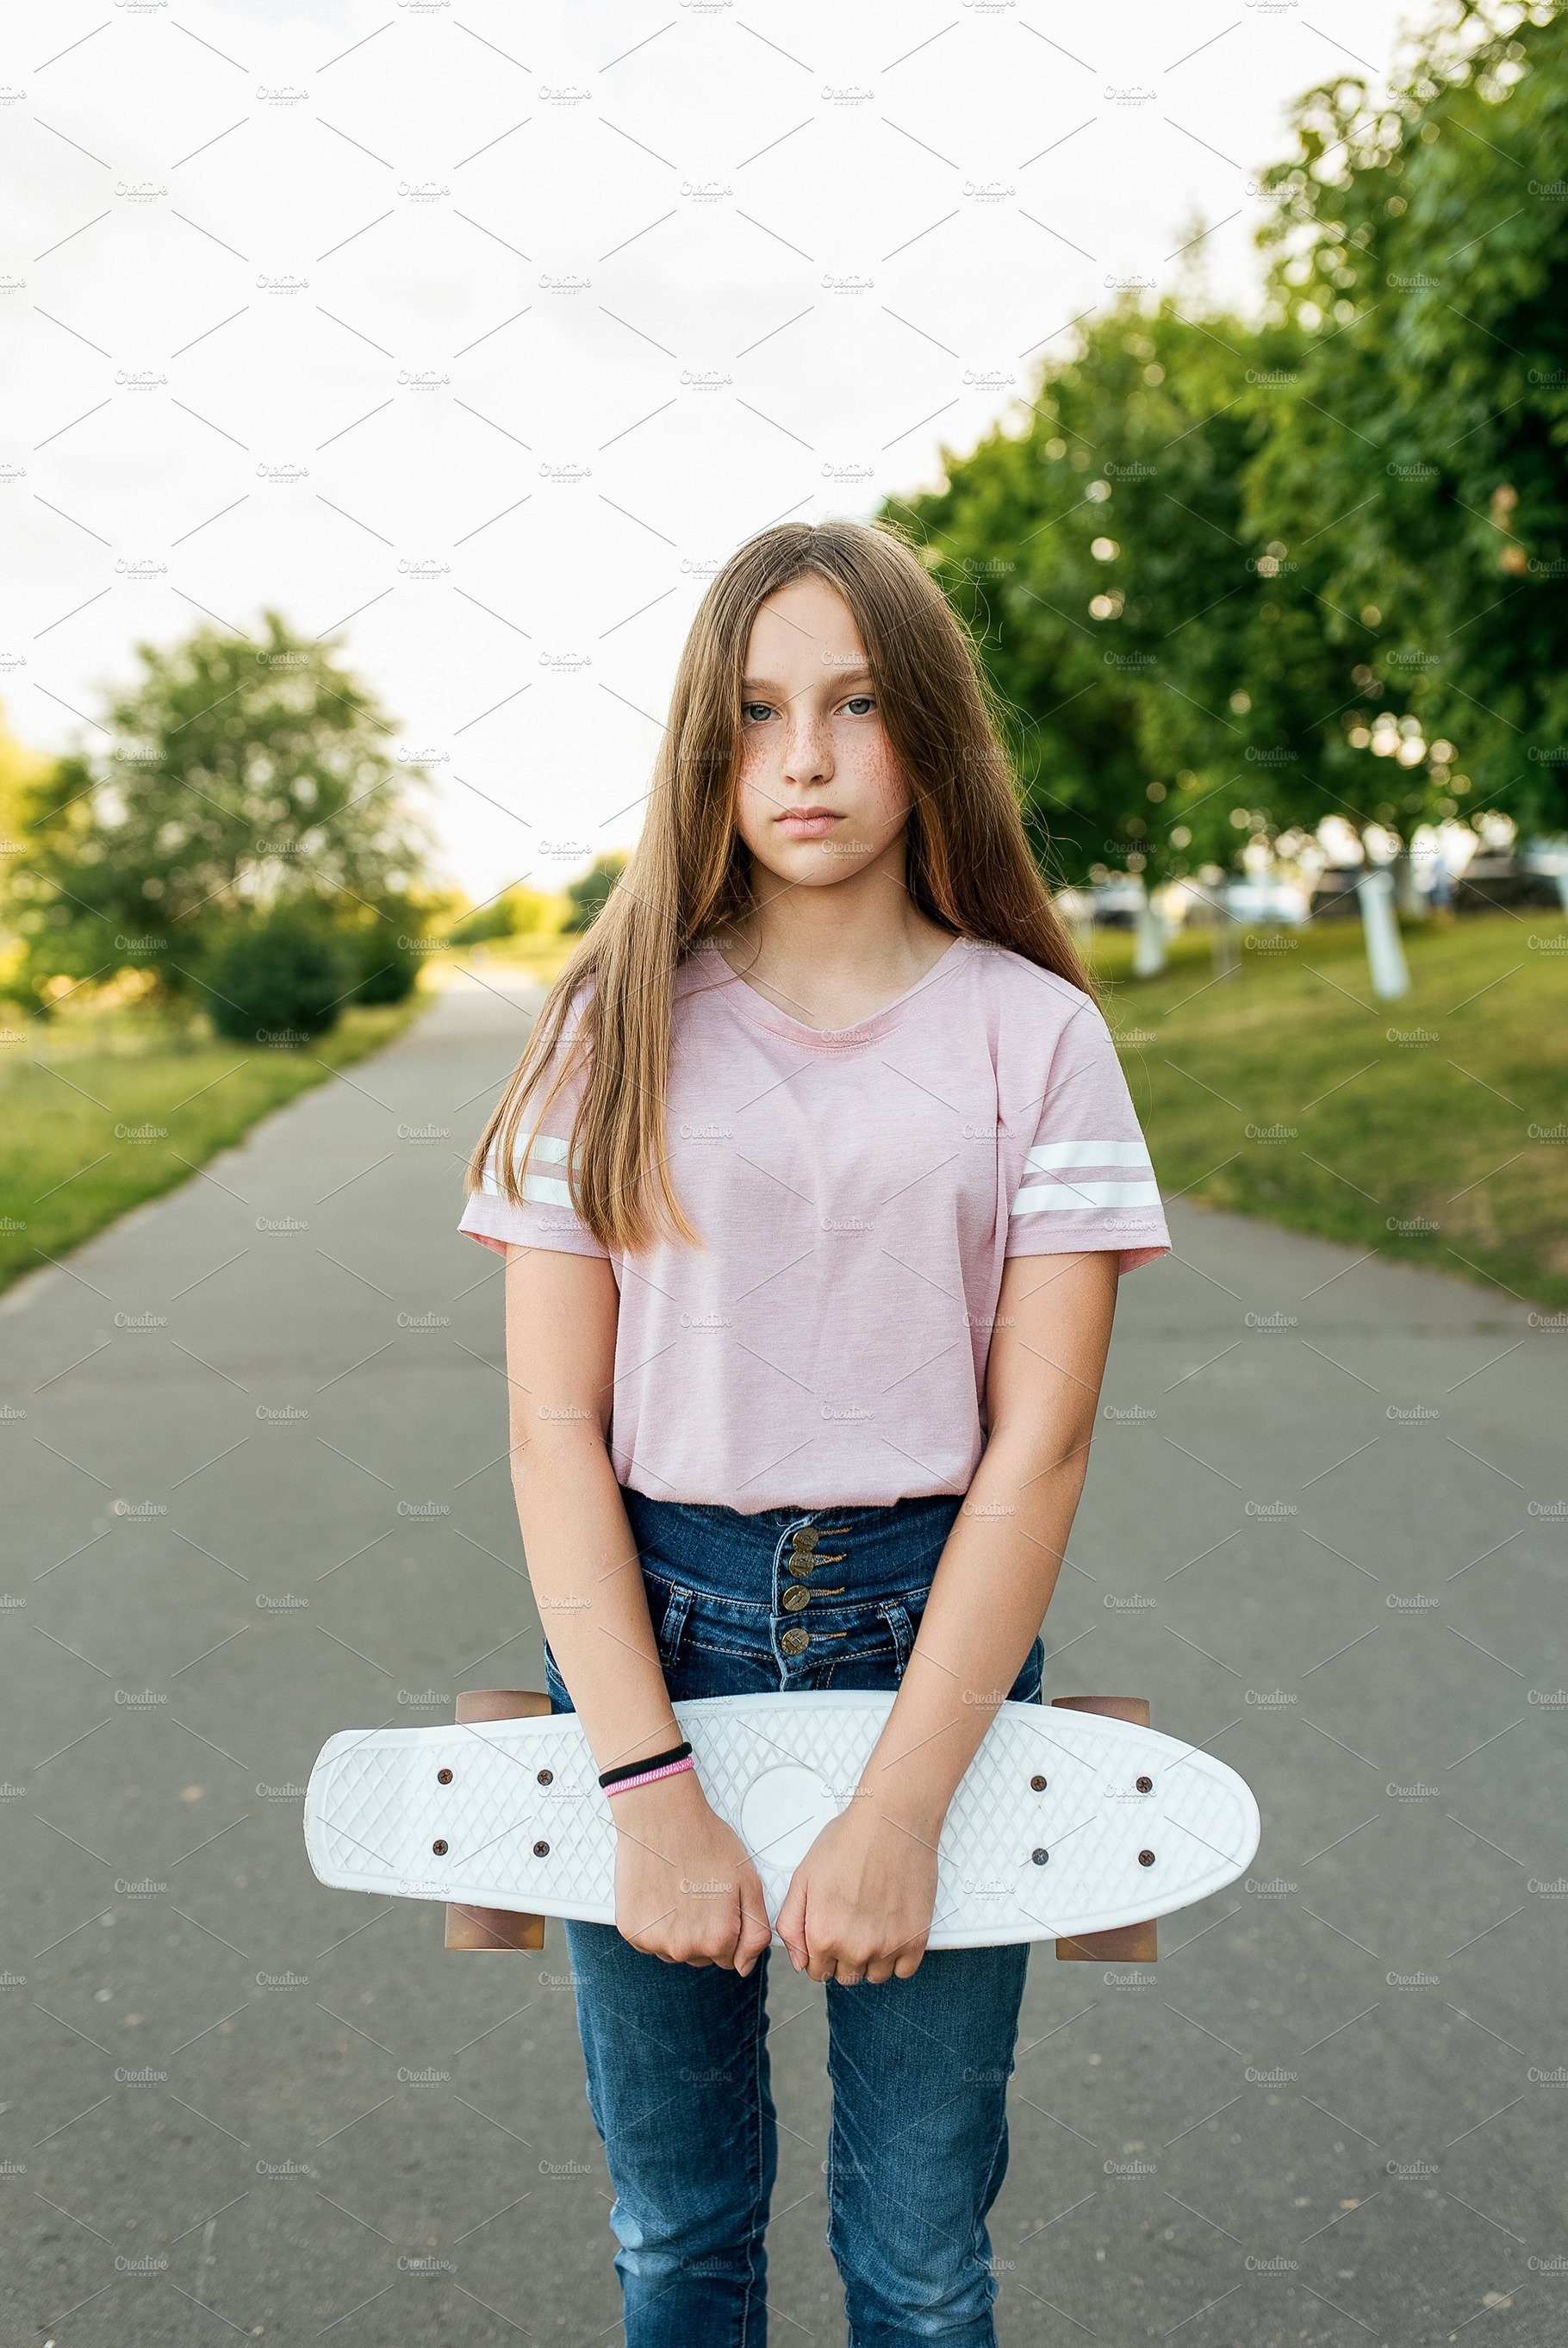 Teen girl 10-15 years old, standing | High-Quality People